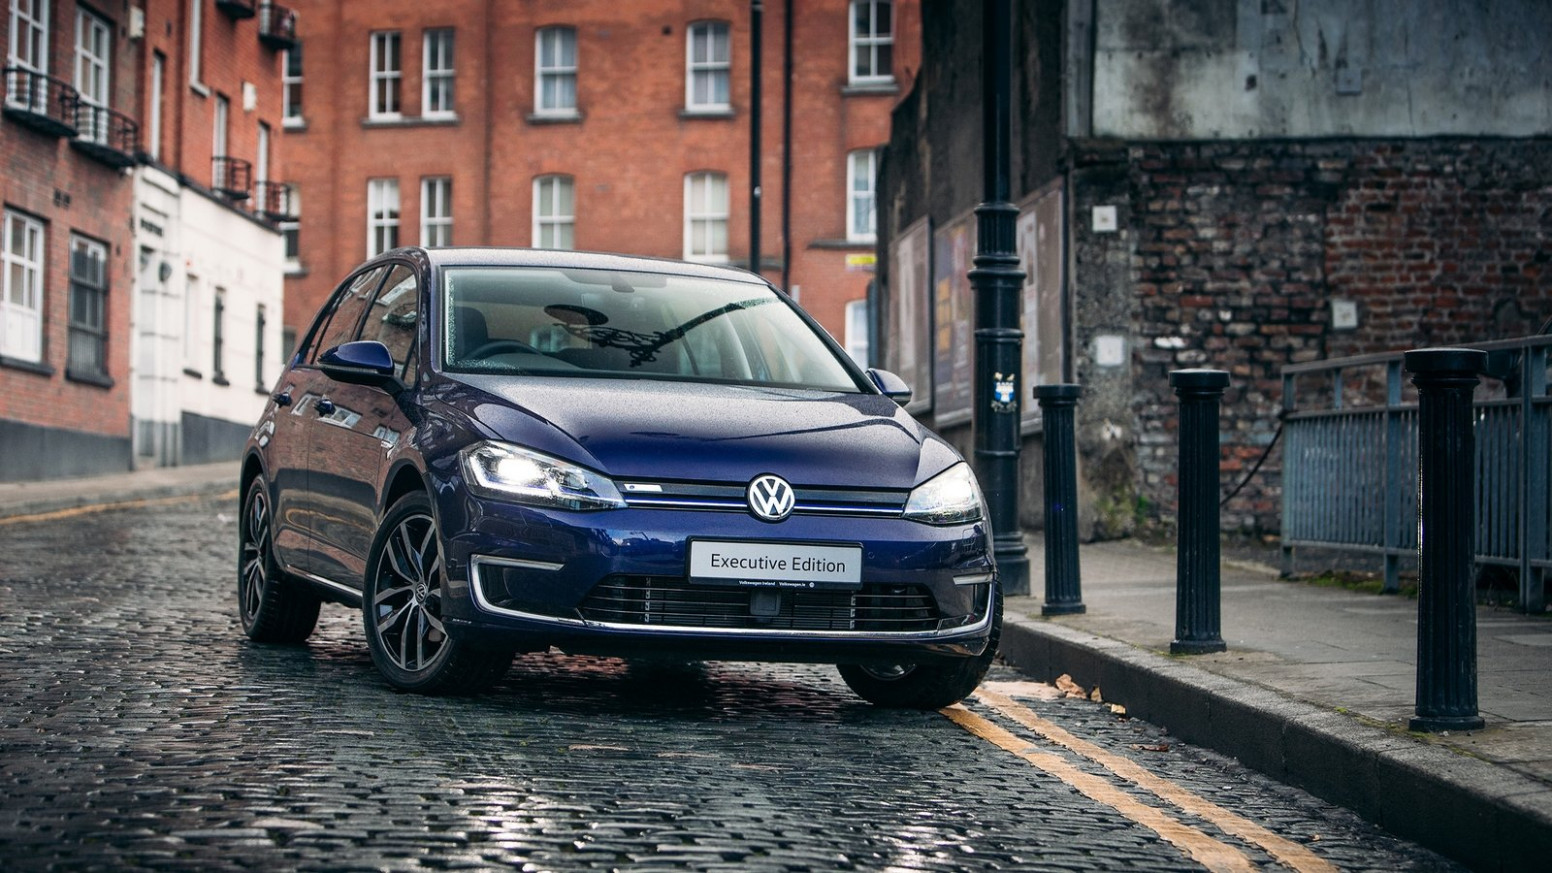 Volkswagen offers scrappage incentive on older car trade-ins